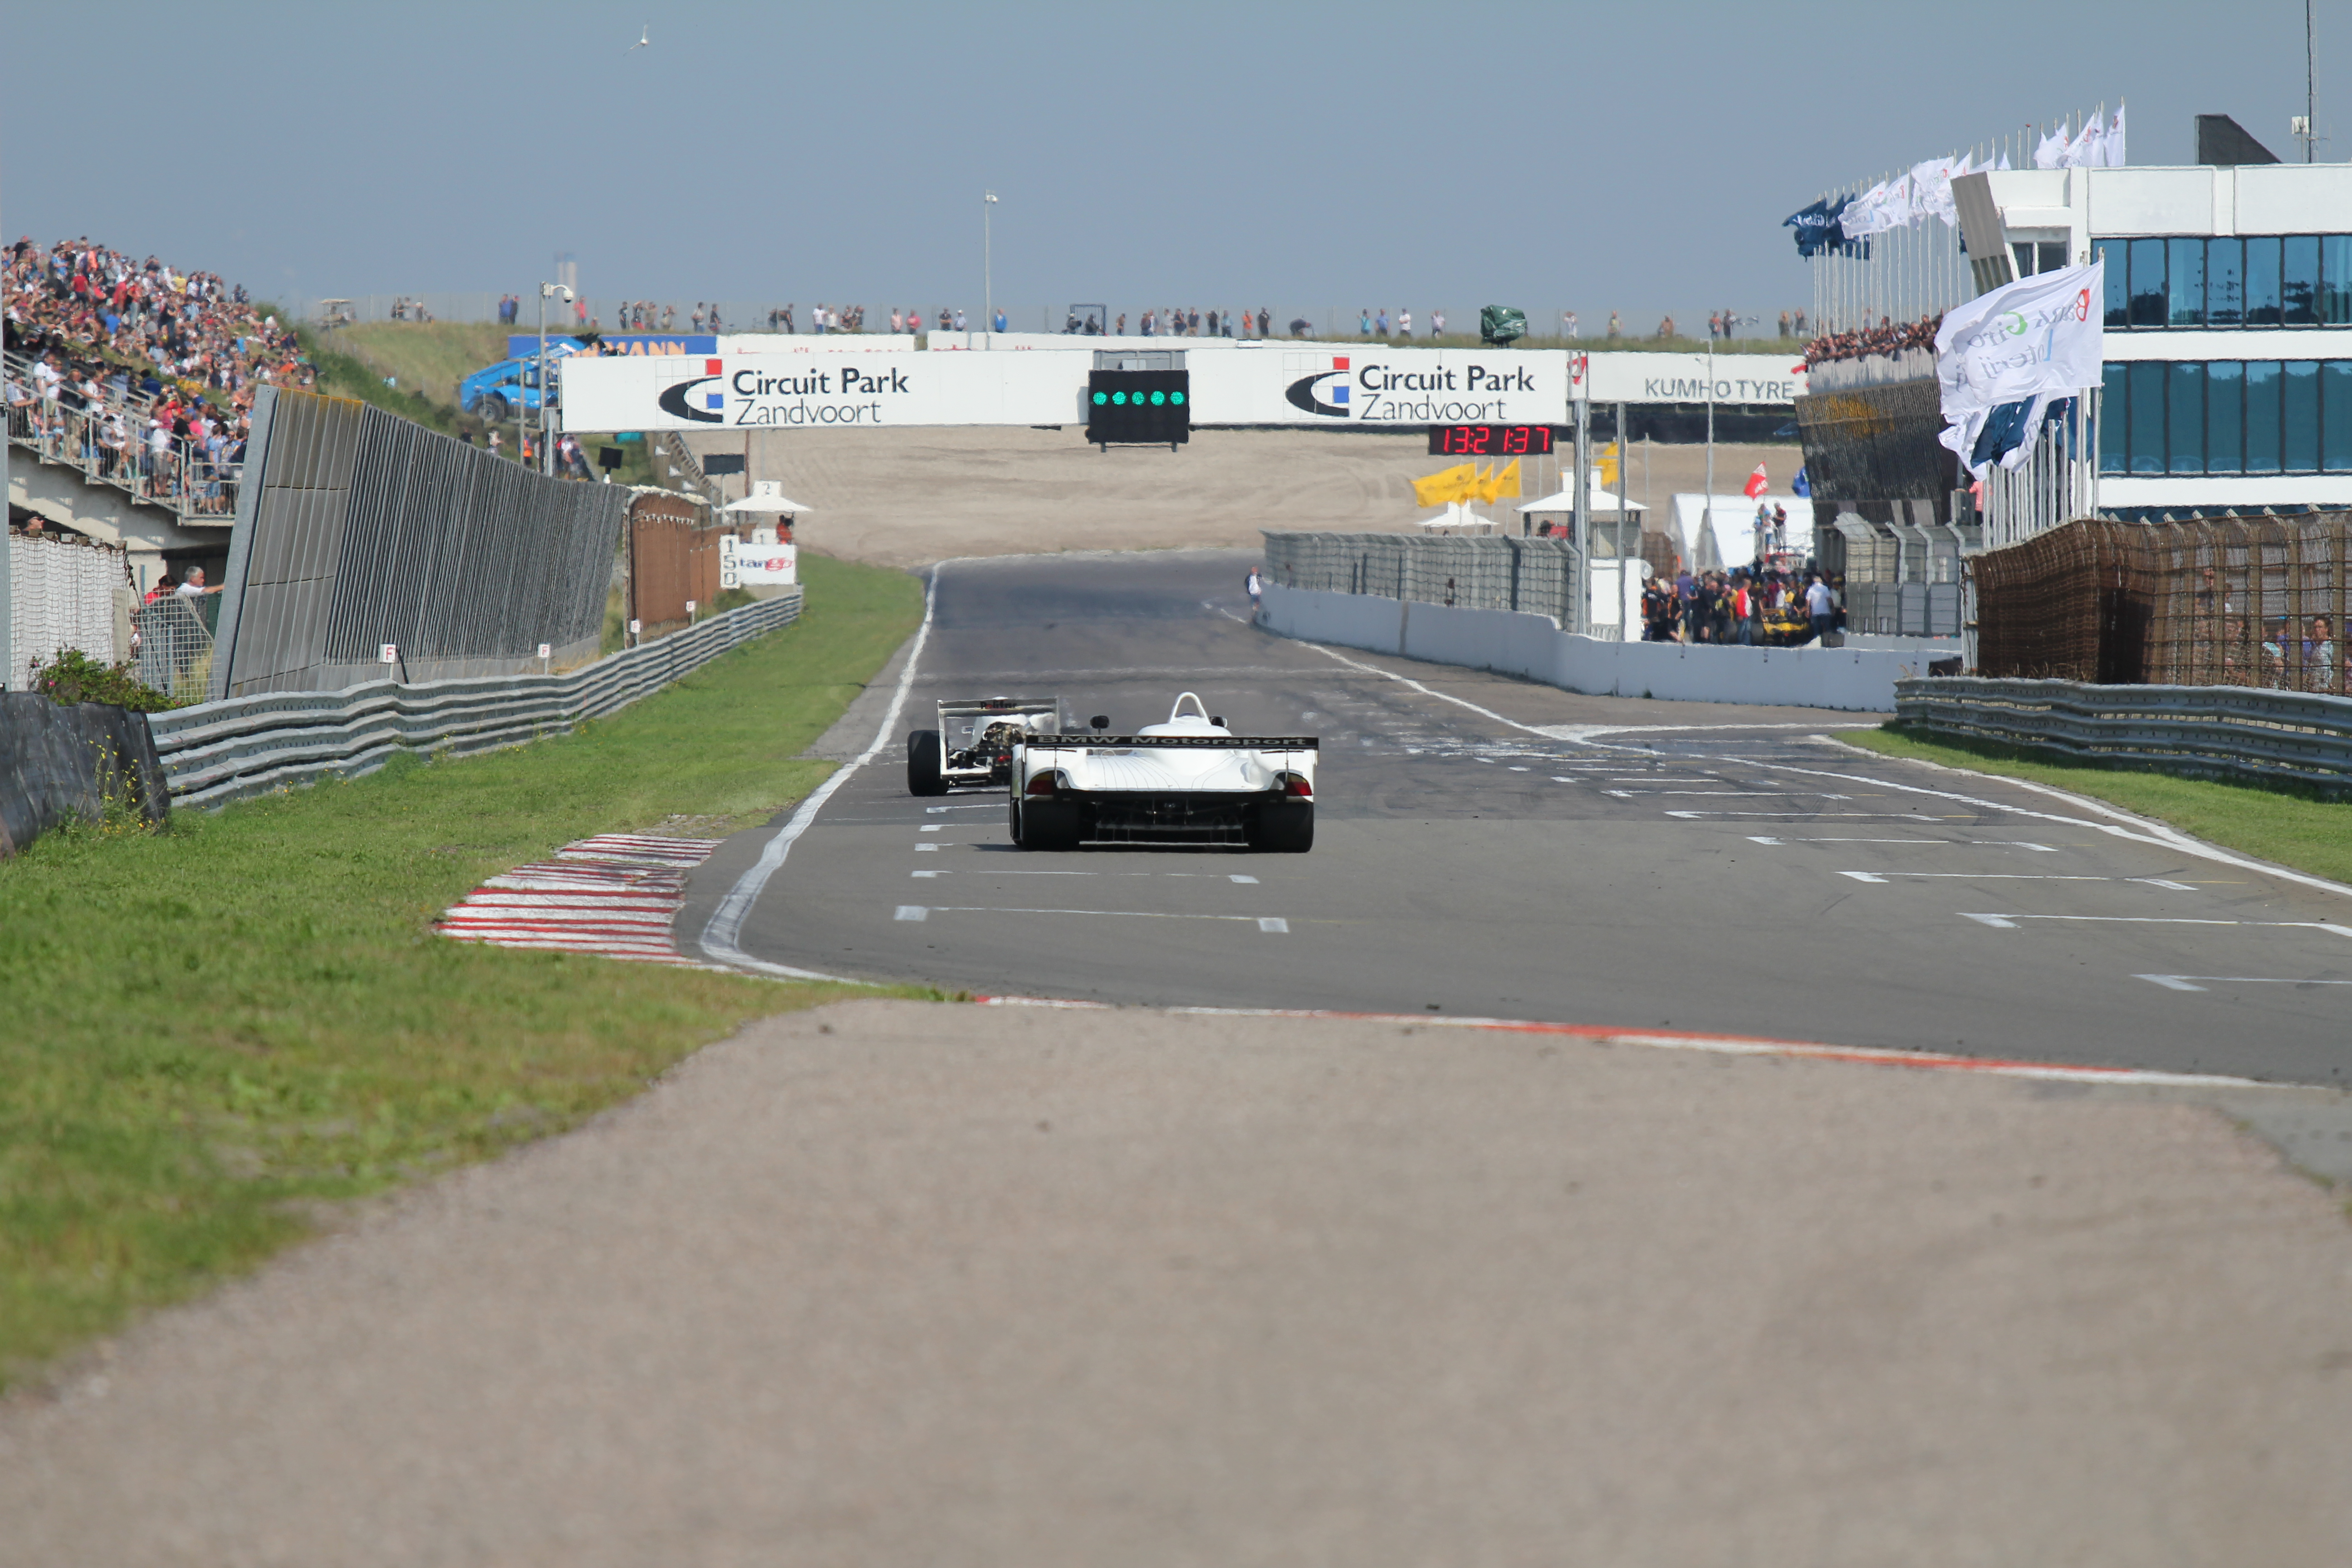 Liberty not denying Zandvoort F1 deal